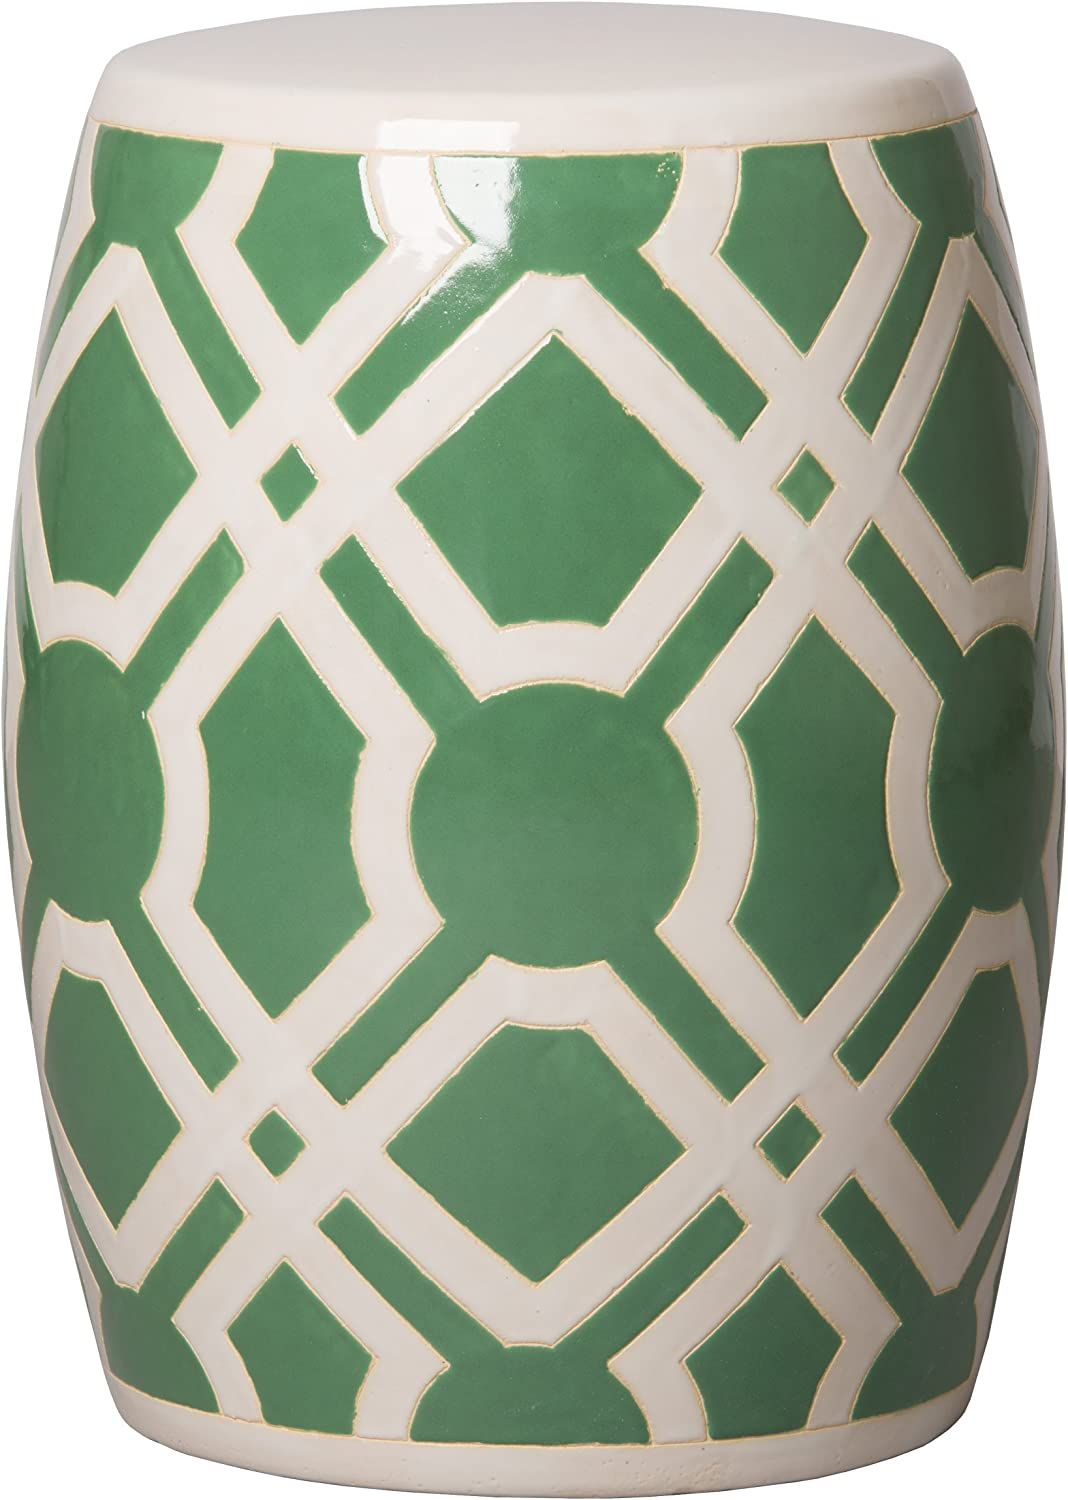 Emissary Home & Garden Labyrinth Stool Meadow Green